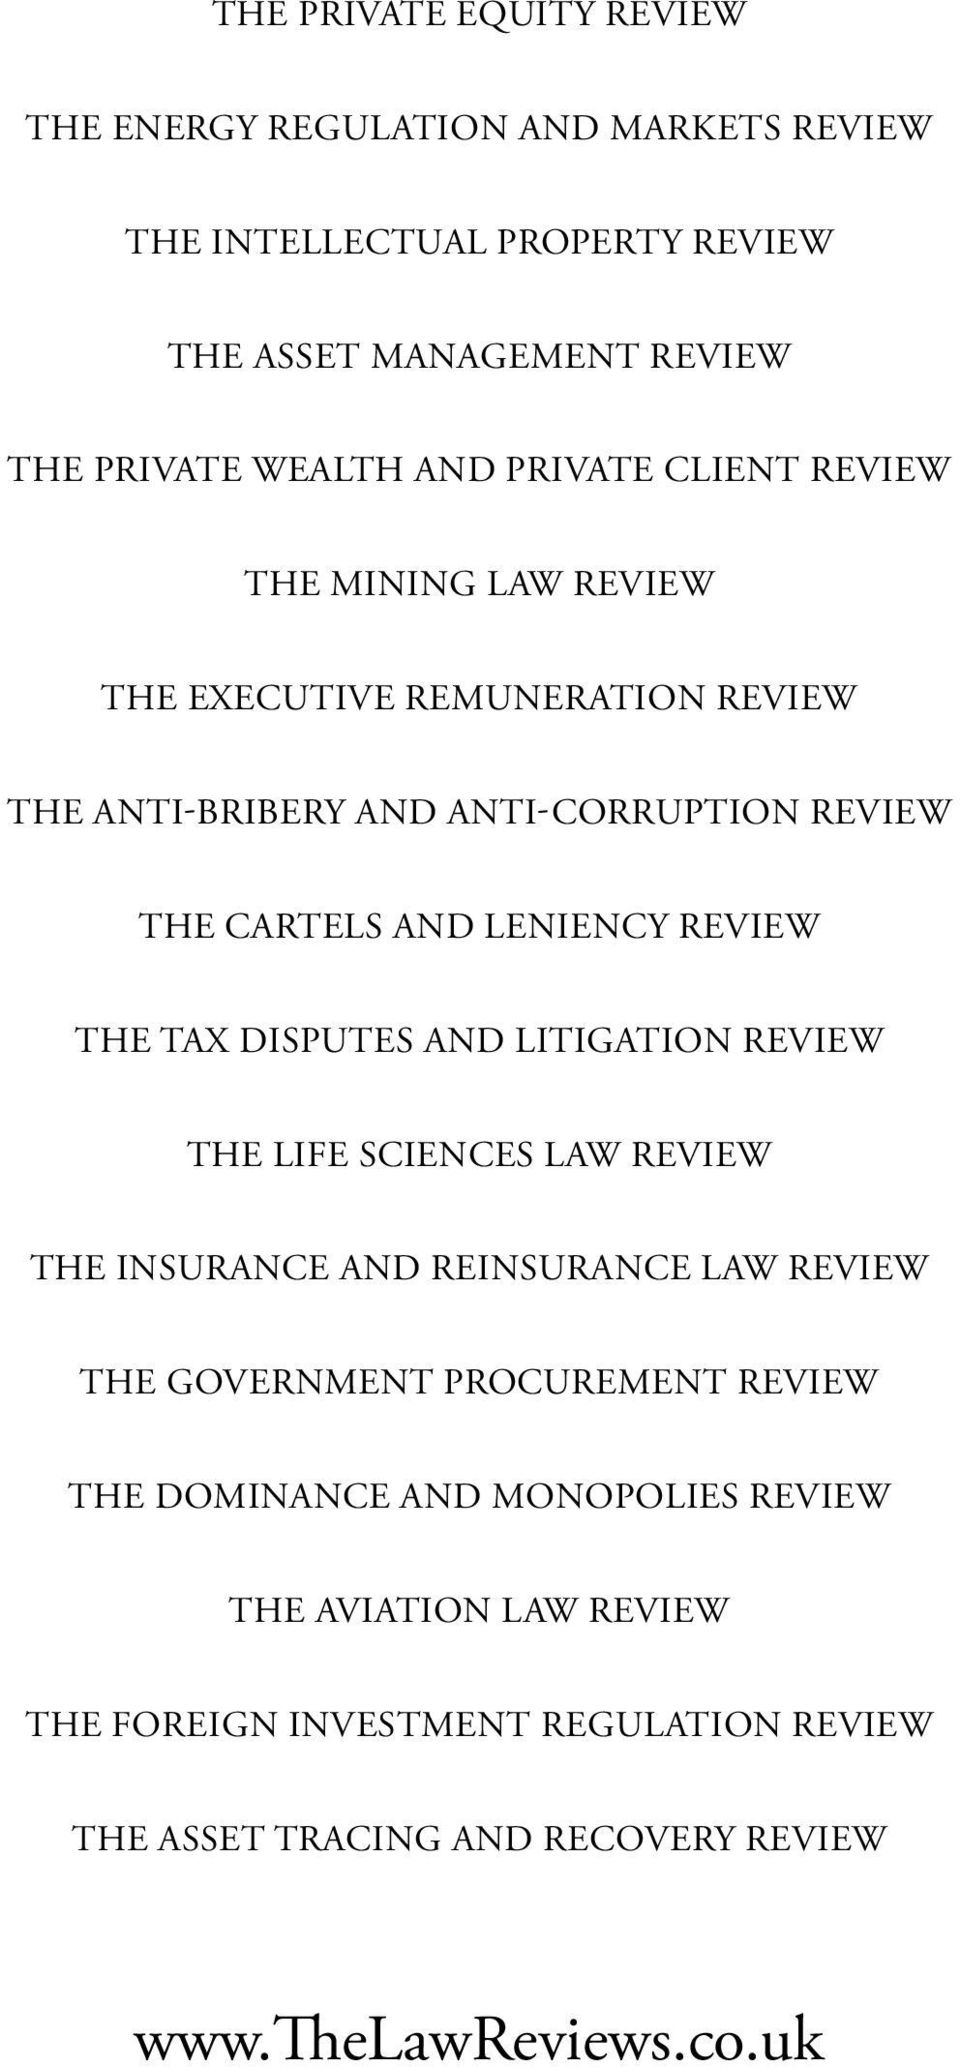 review The Tax Disputes and Litigation review The life sciences law review The Insurance and Reinsurance law review The Government Procurement Review